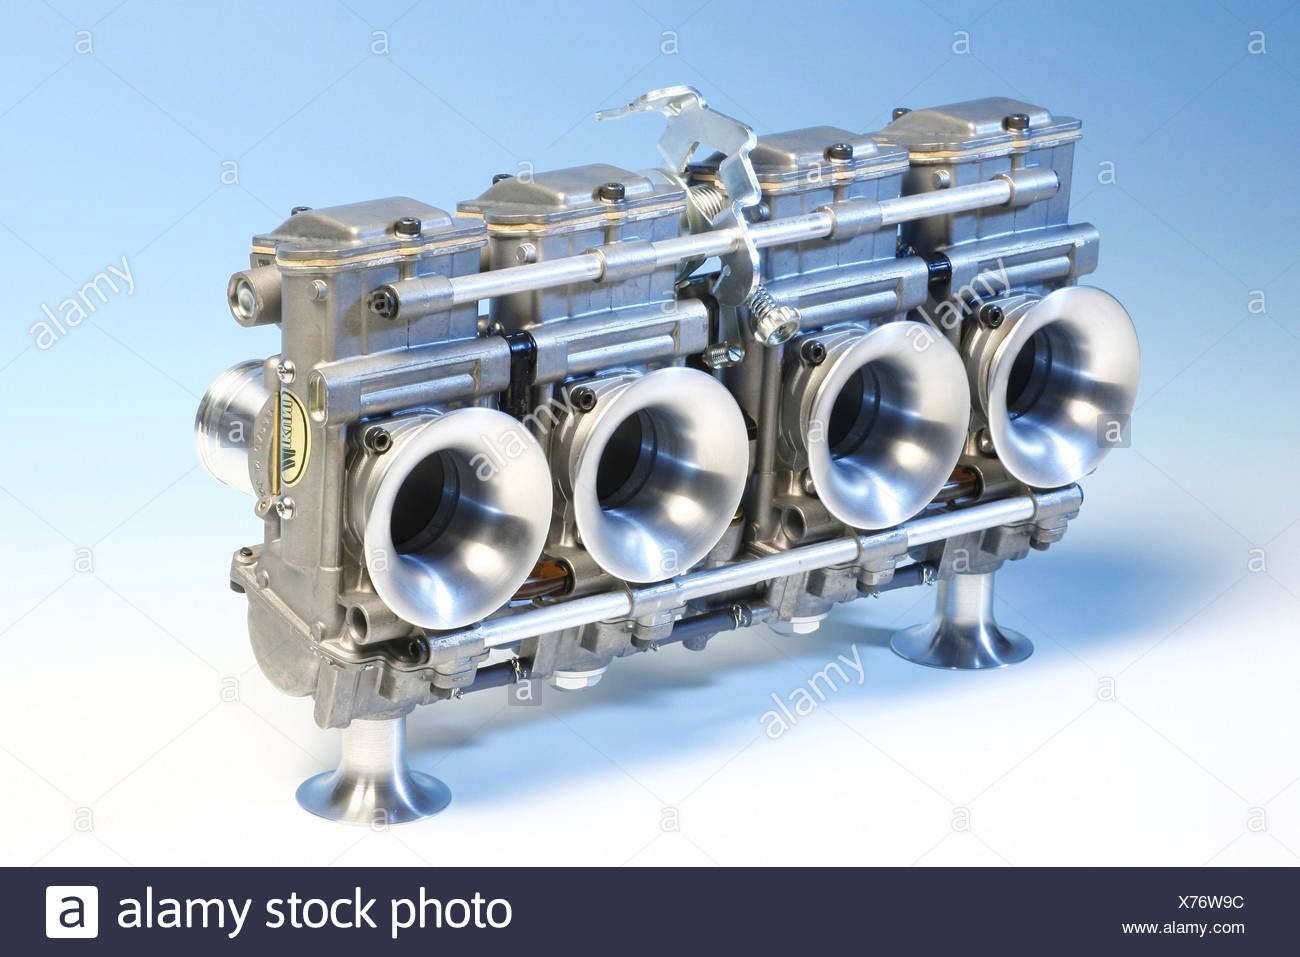 Carburettor Engine Stock Photos & Carburettor Engine Stock